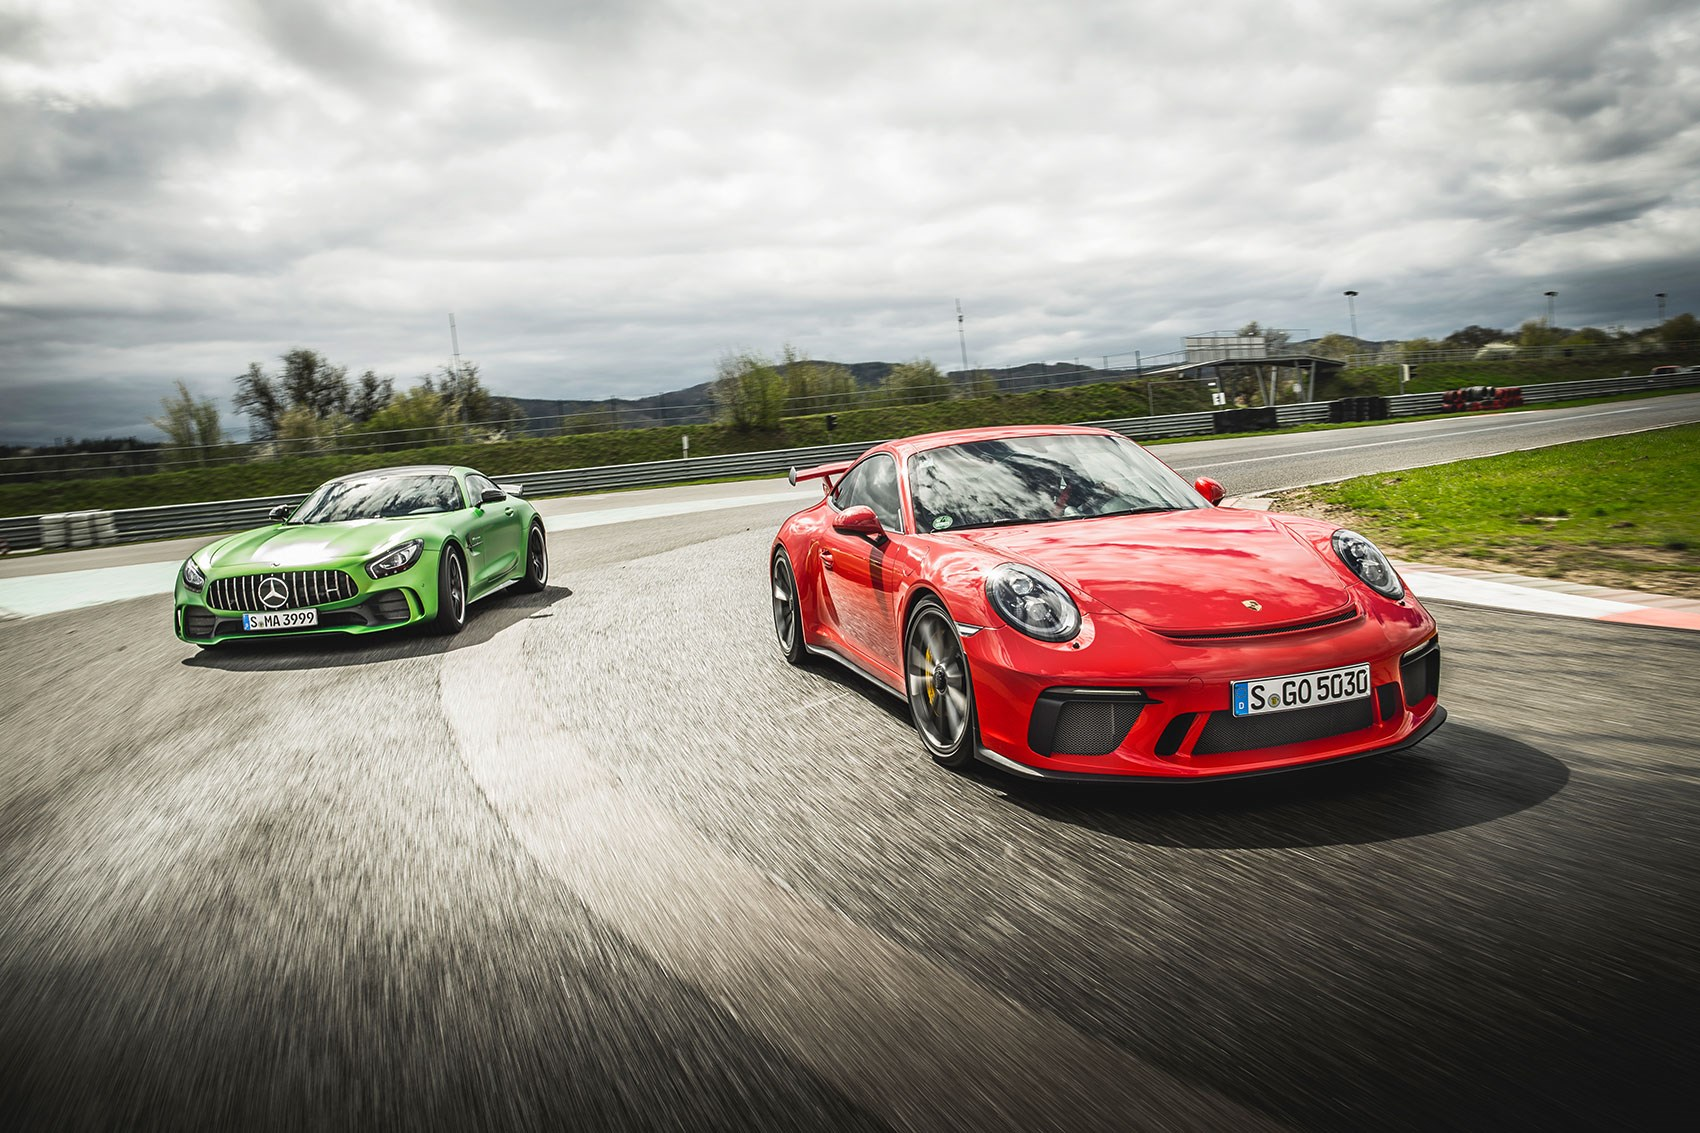 porsche-gt3-amg-gtr-13 Interesting Porsche 911 Gt2 and Gt3 Cars Trend